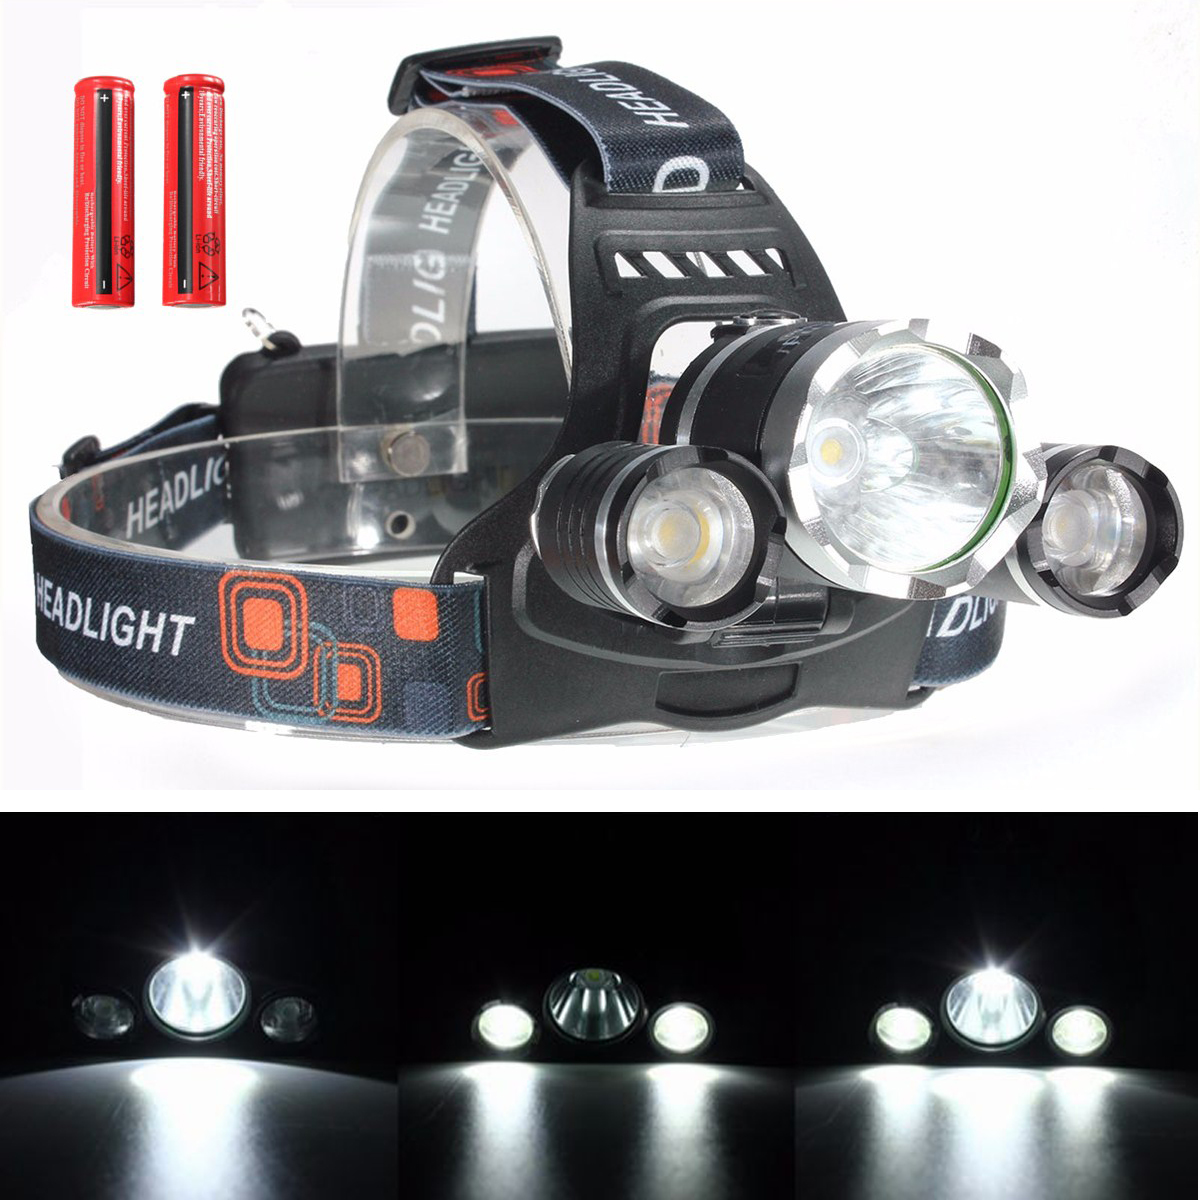 Elfeland 5000 Lumens 3x T6 LED Rechargeable Headlight Headlamp Flashlight Torch Waterproof with 2pcs 3000mAh 18650 Battery (Not Included Charger)